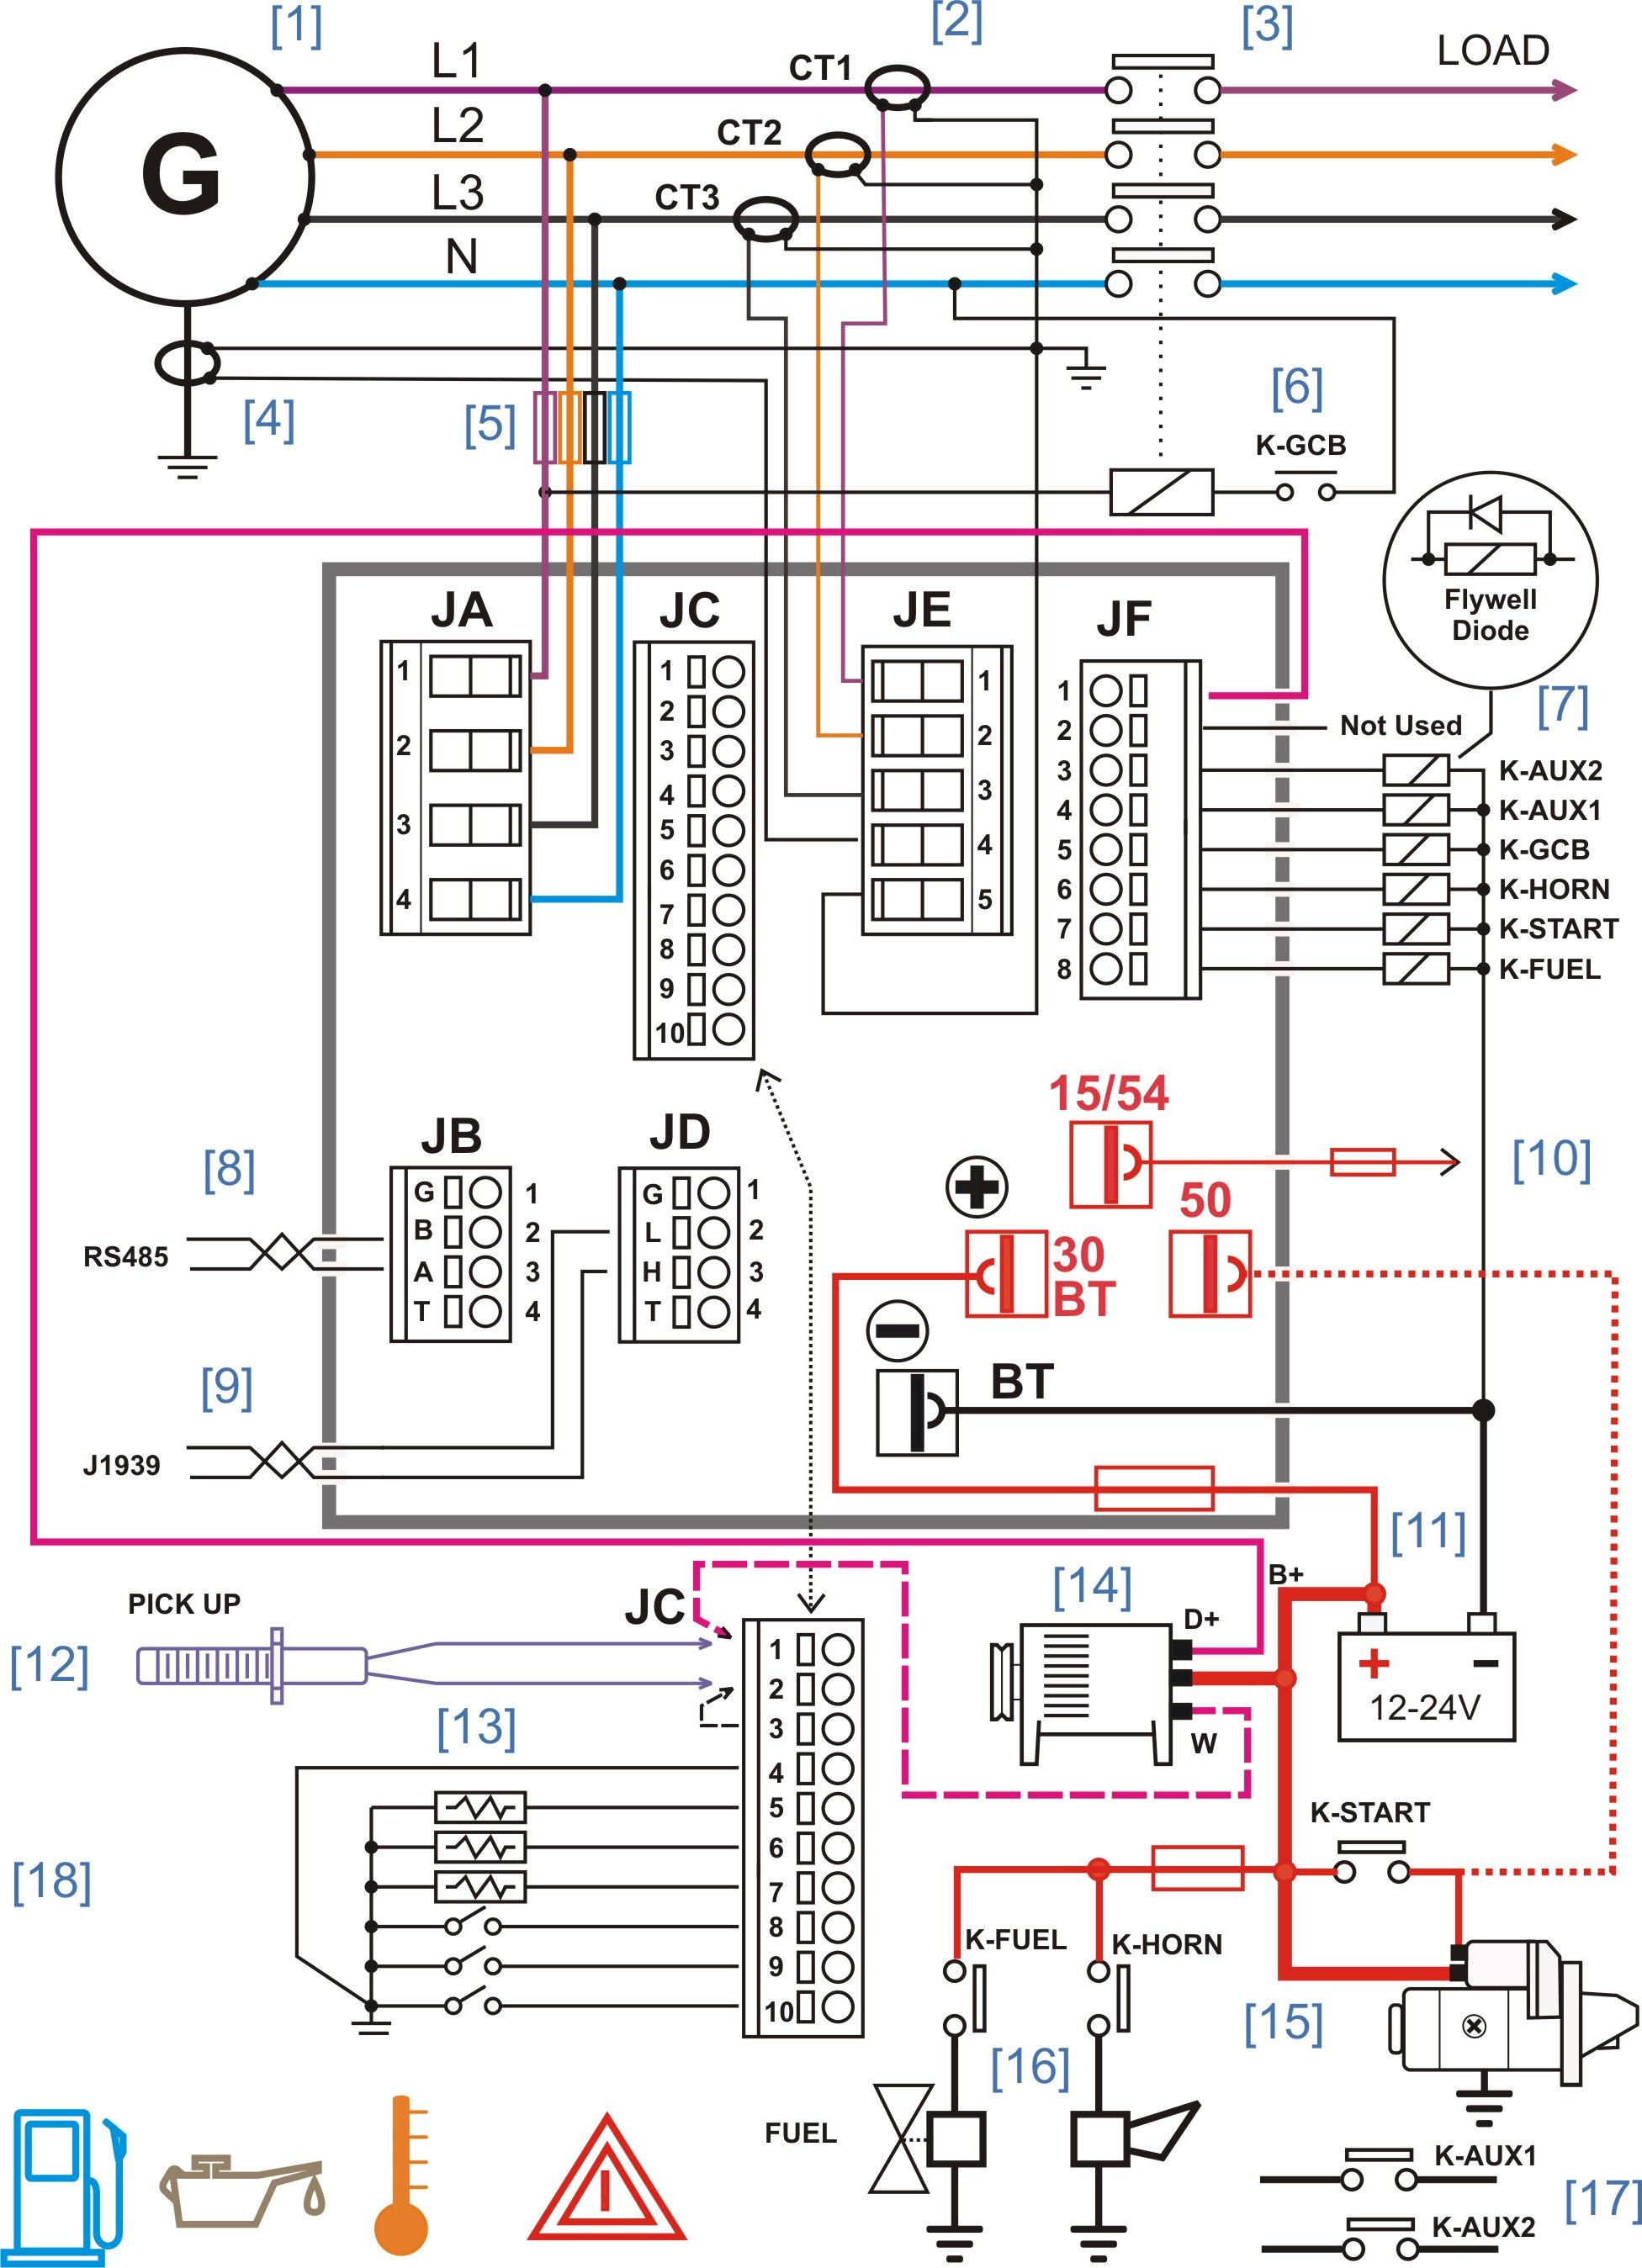 electrical panel wiring diagram software Download-Diesel Generator Control Panel Wiring Diagram 2-m